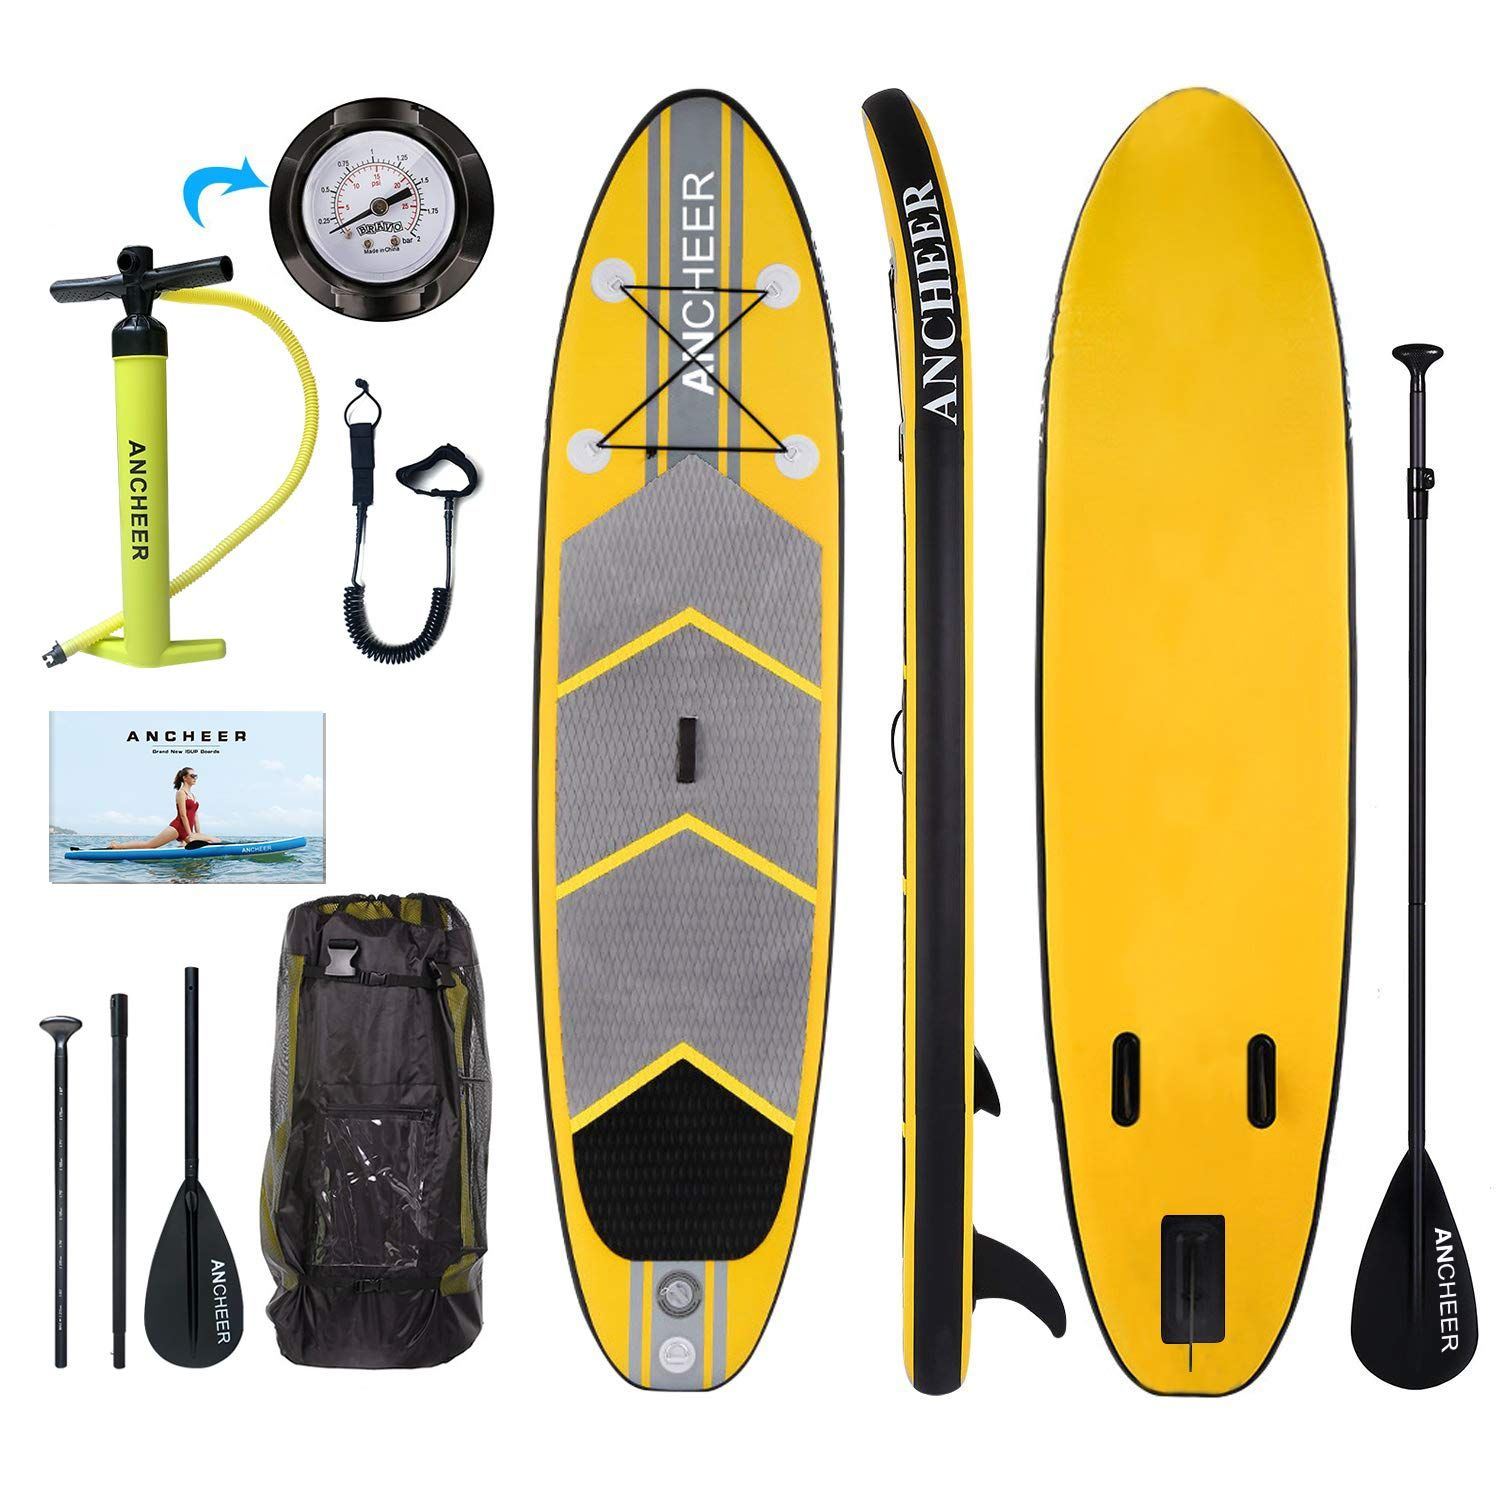 Ancheer Inflatable Stand Up Paddle Board 10 Non Slip Deck 6 Inches Thick Isup Boards Package W A Standup Paddle Sup Accessories Paddle Boarding